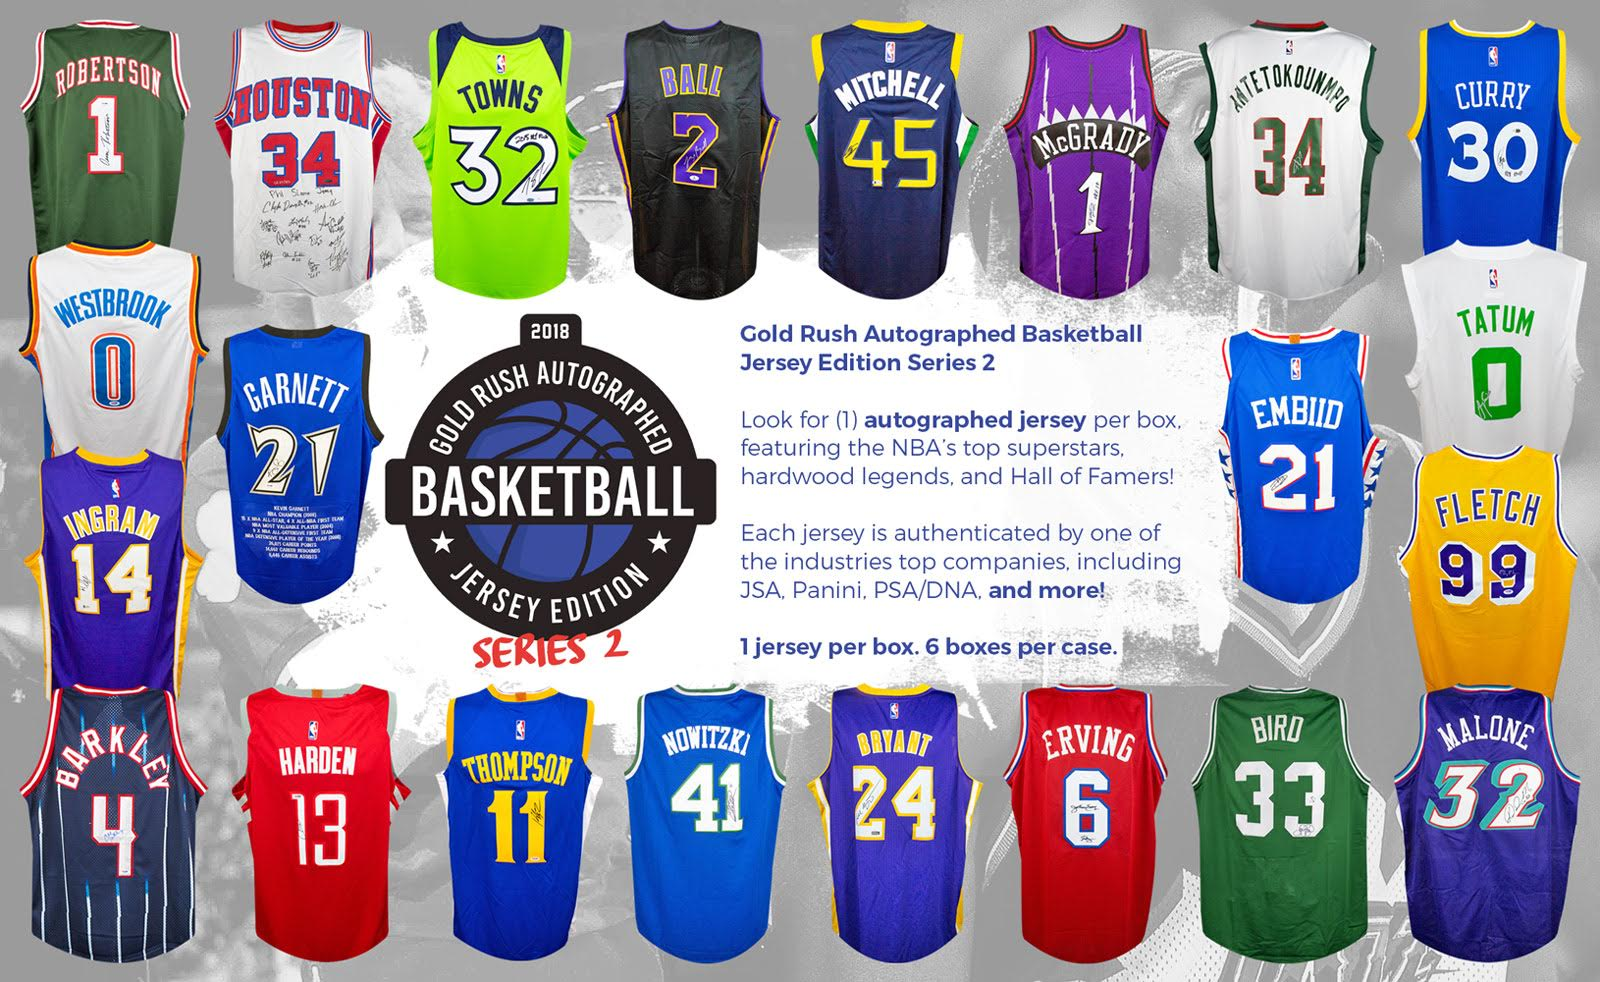 2018 Gold Rush Autographed Basketball Jersey Edition Series 2 6-Box Case-Cherry Collectables